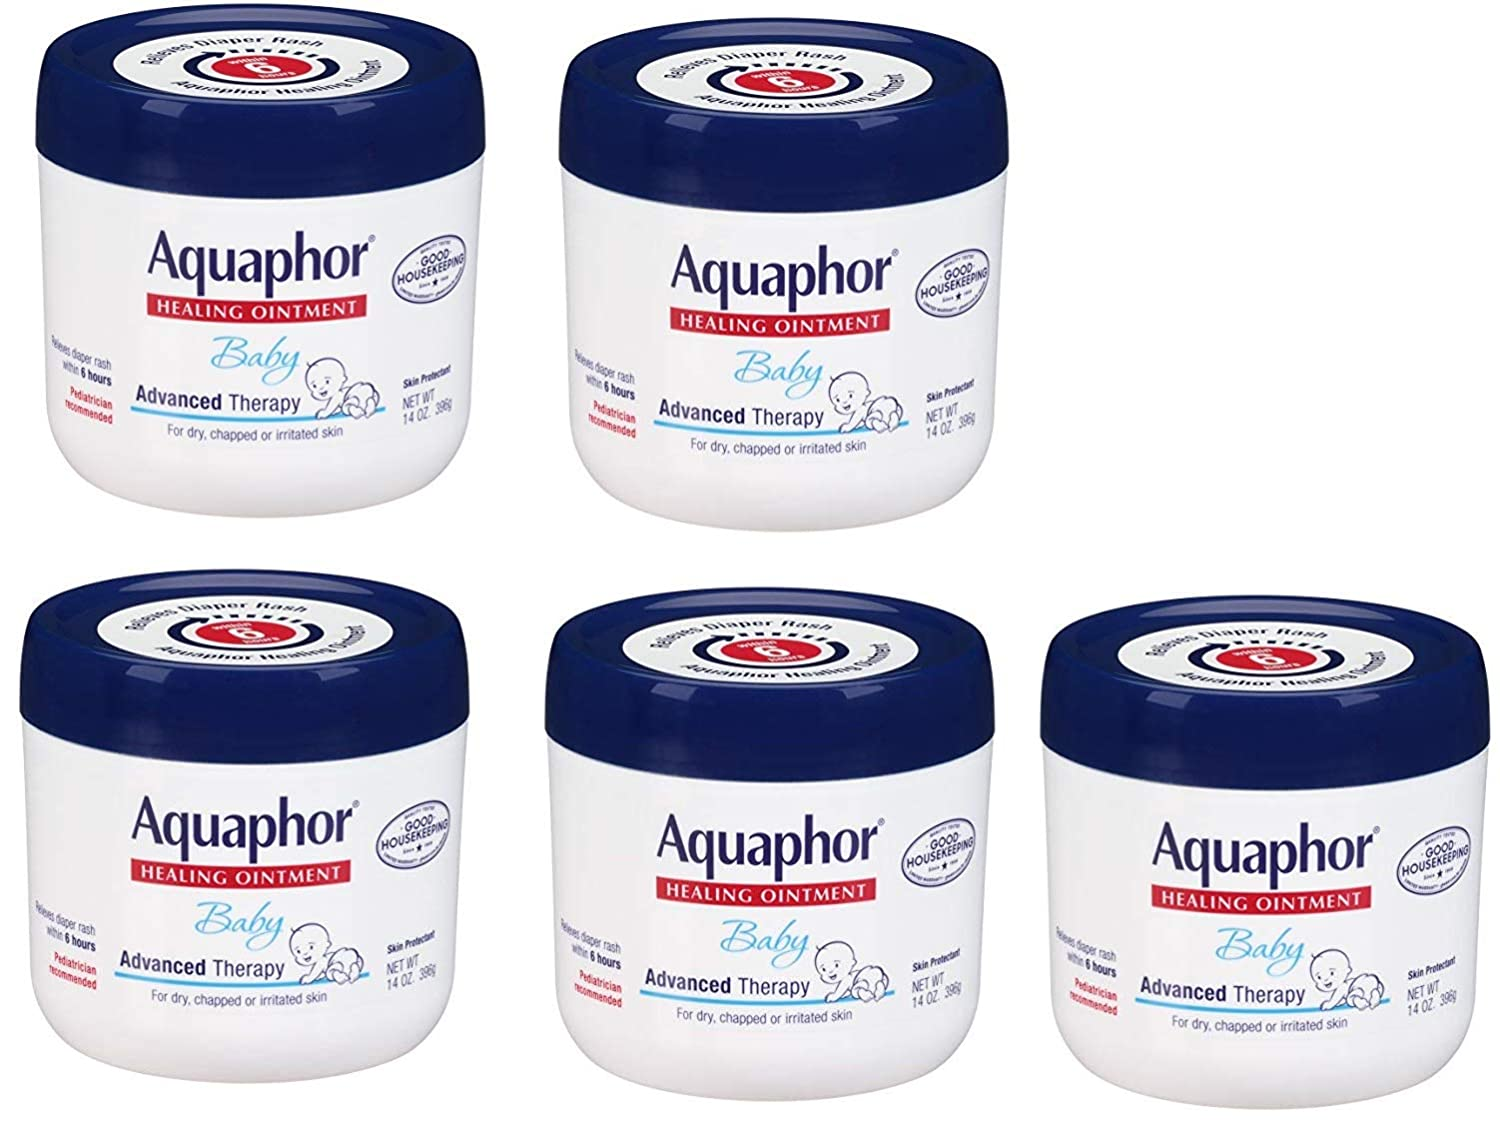 Aquaphor Baby Healing Ointment Advanced Therapy Skin Protectant, 14 Ounce, 5 Pack